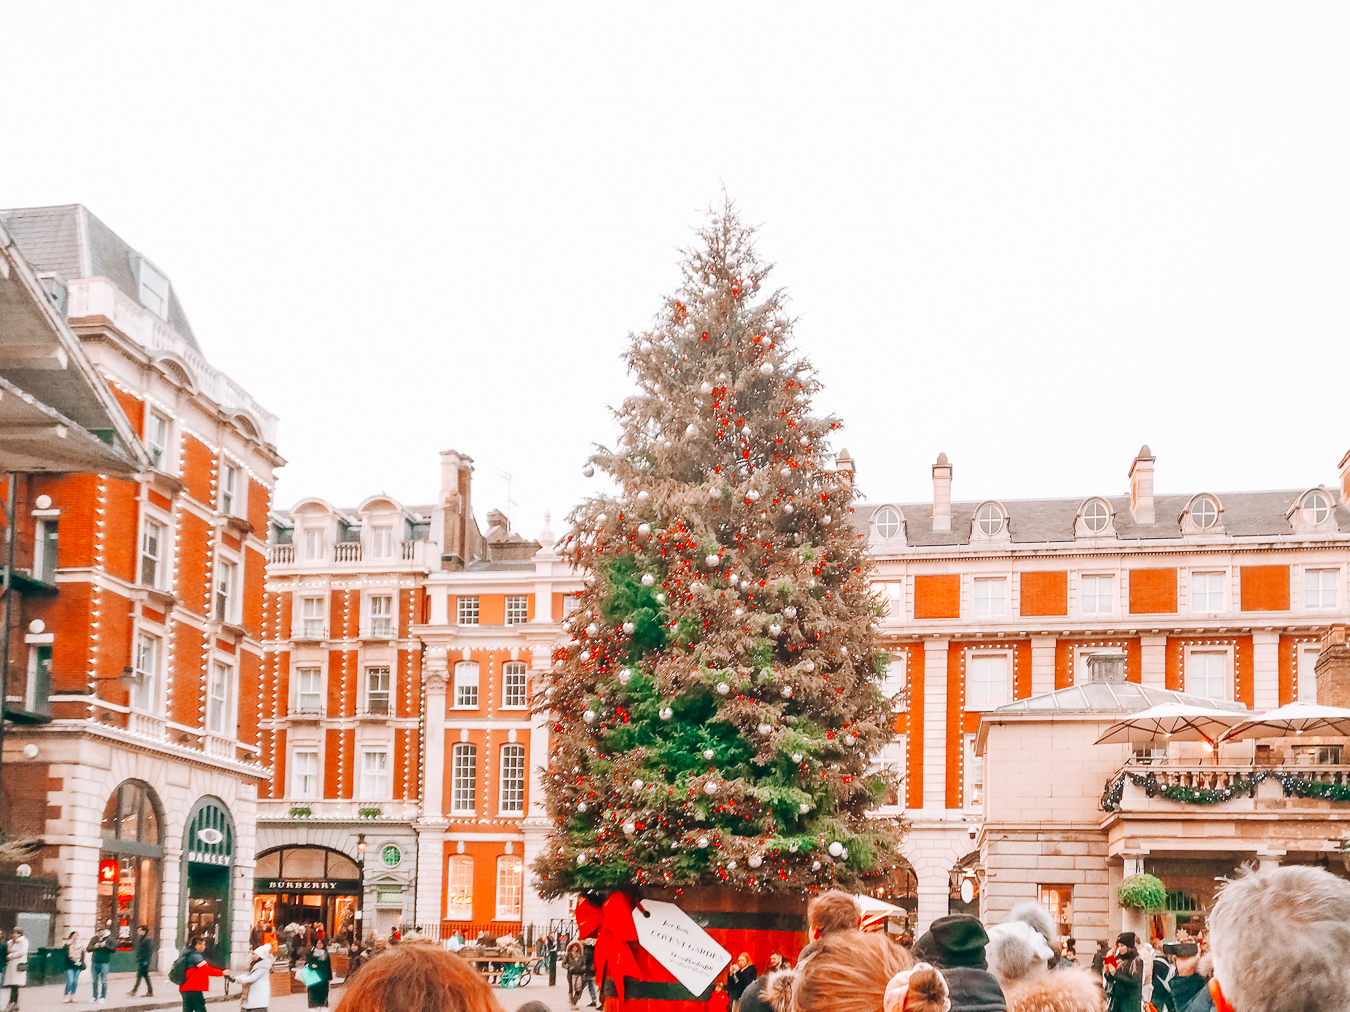 Christmas tree at Covent Garden in London